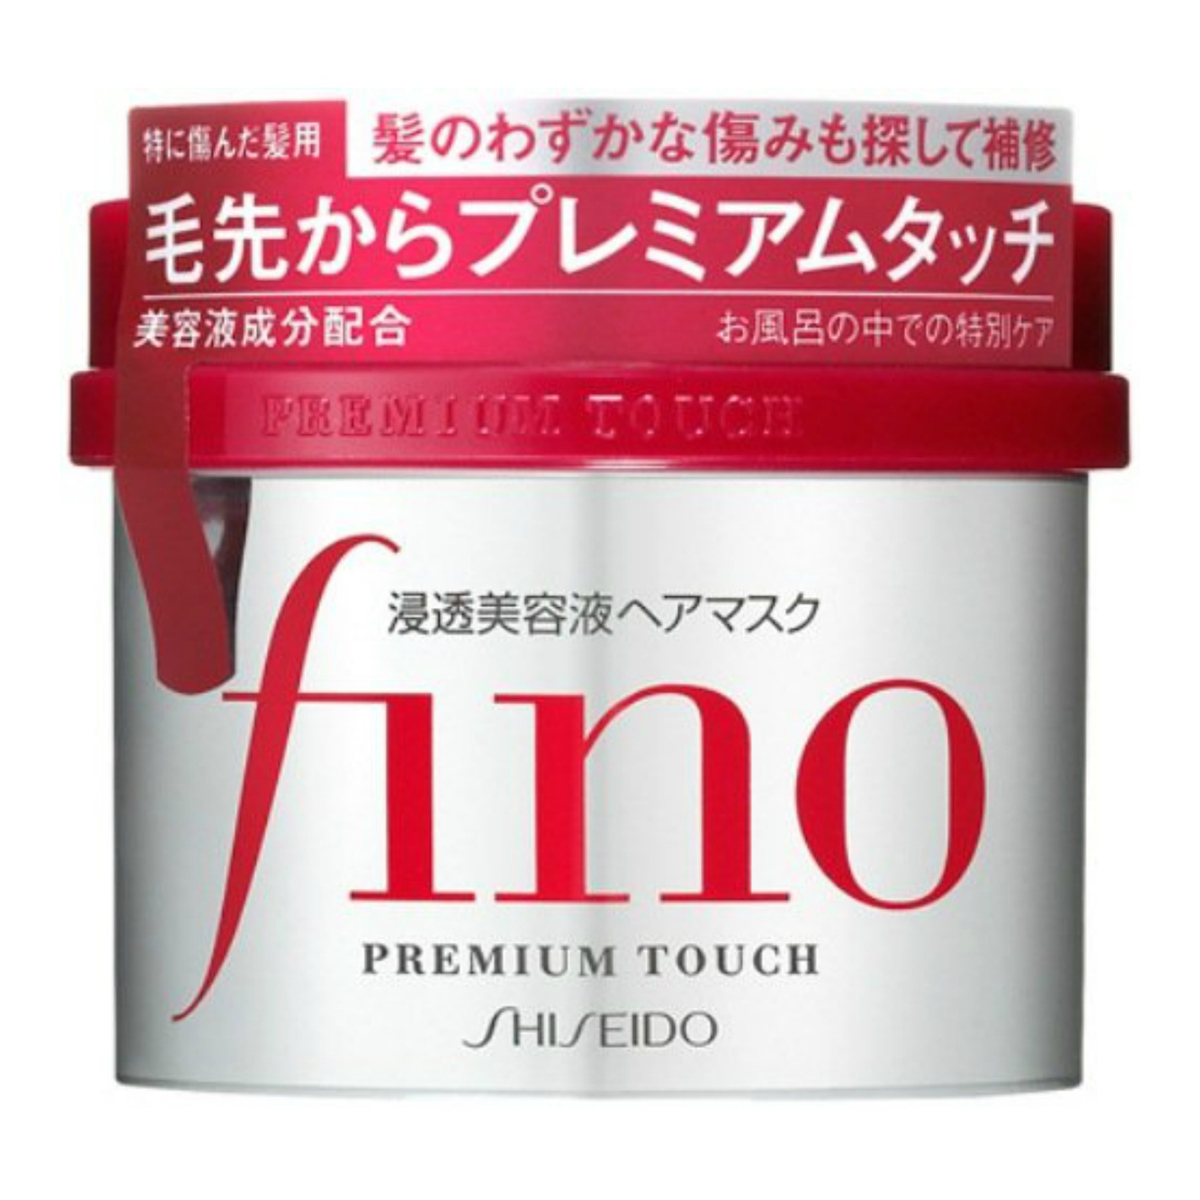 Shiseido Shiseido Fino fino premium touch beauty pussy hair mask 230 g (rinse treatment) classy and comfortable grace floral scent * per person maximum limited to 1